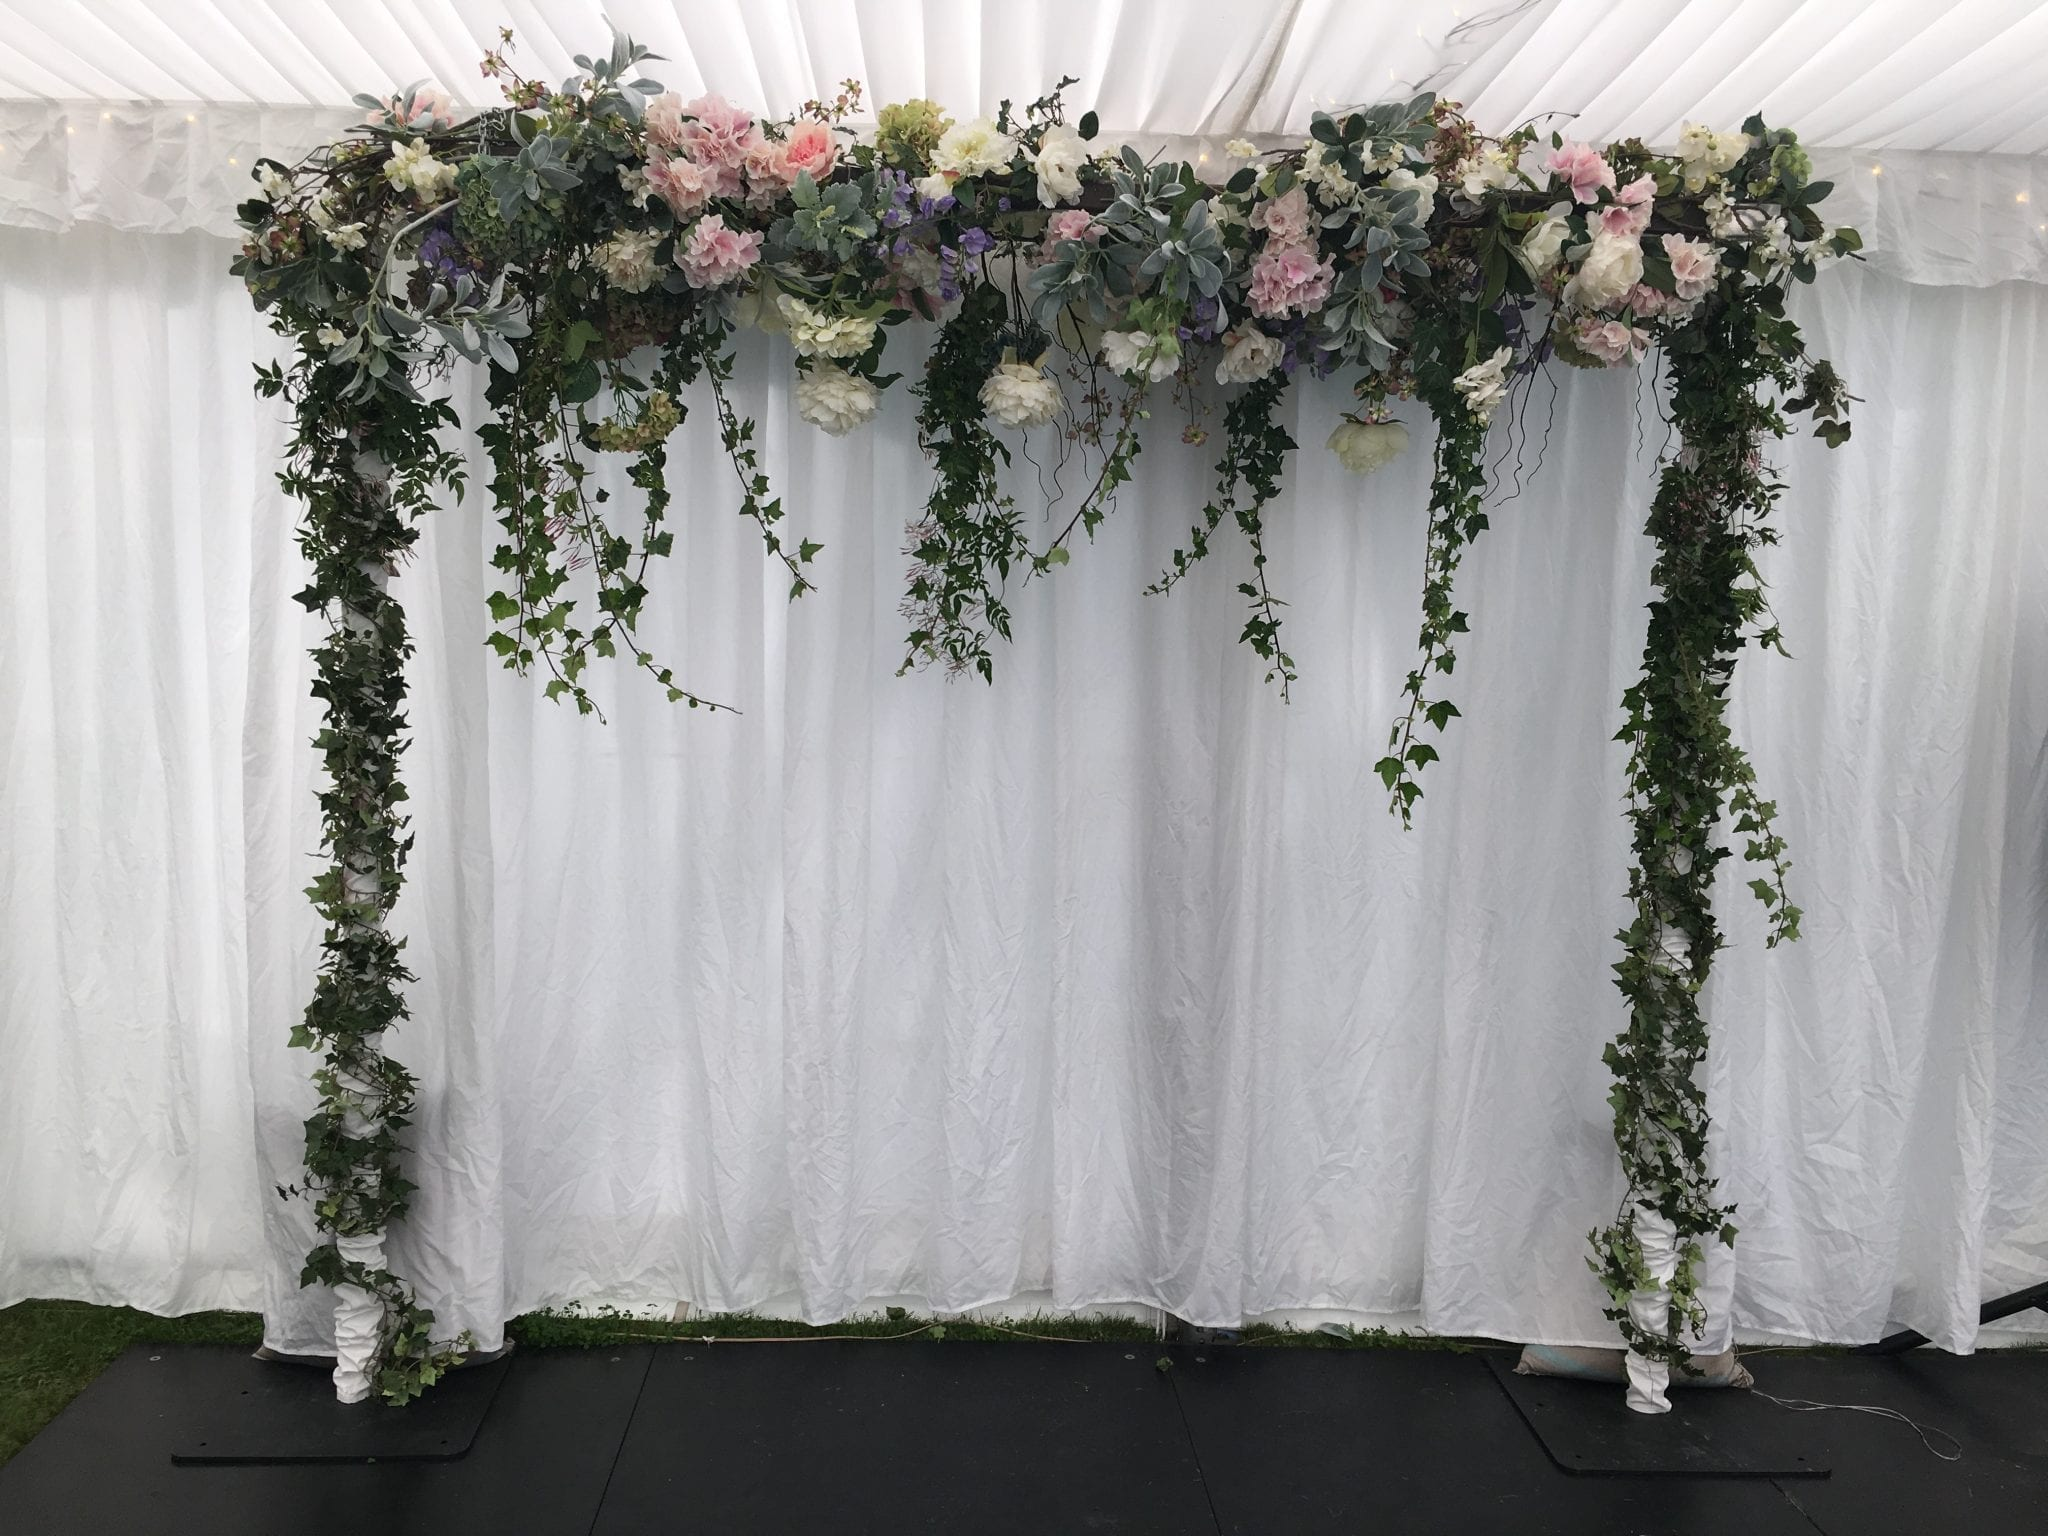 Blog christchurch event stylist florist kim chan events pastel florals ivy archway mightylinksfo